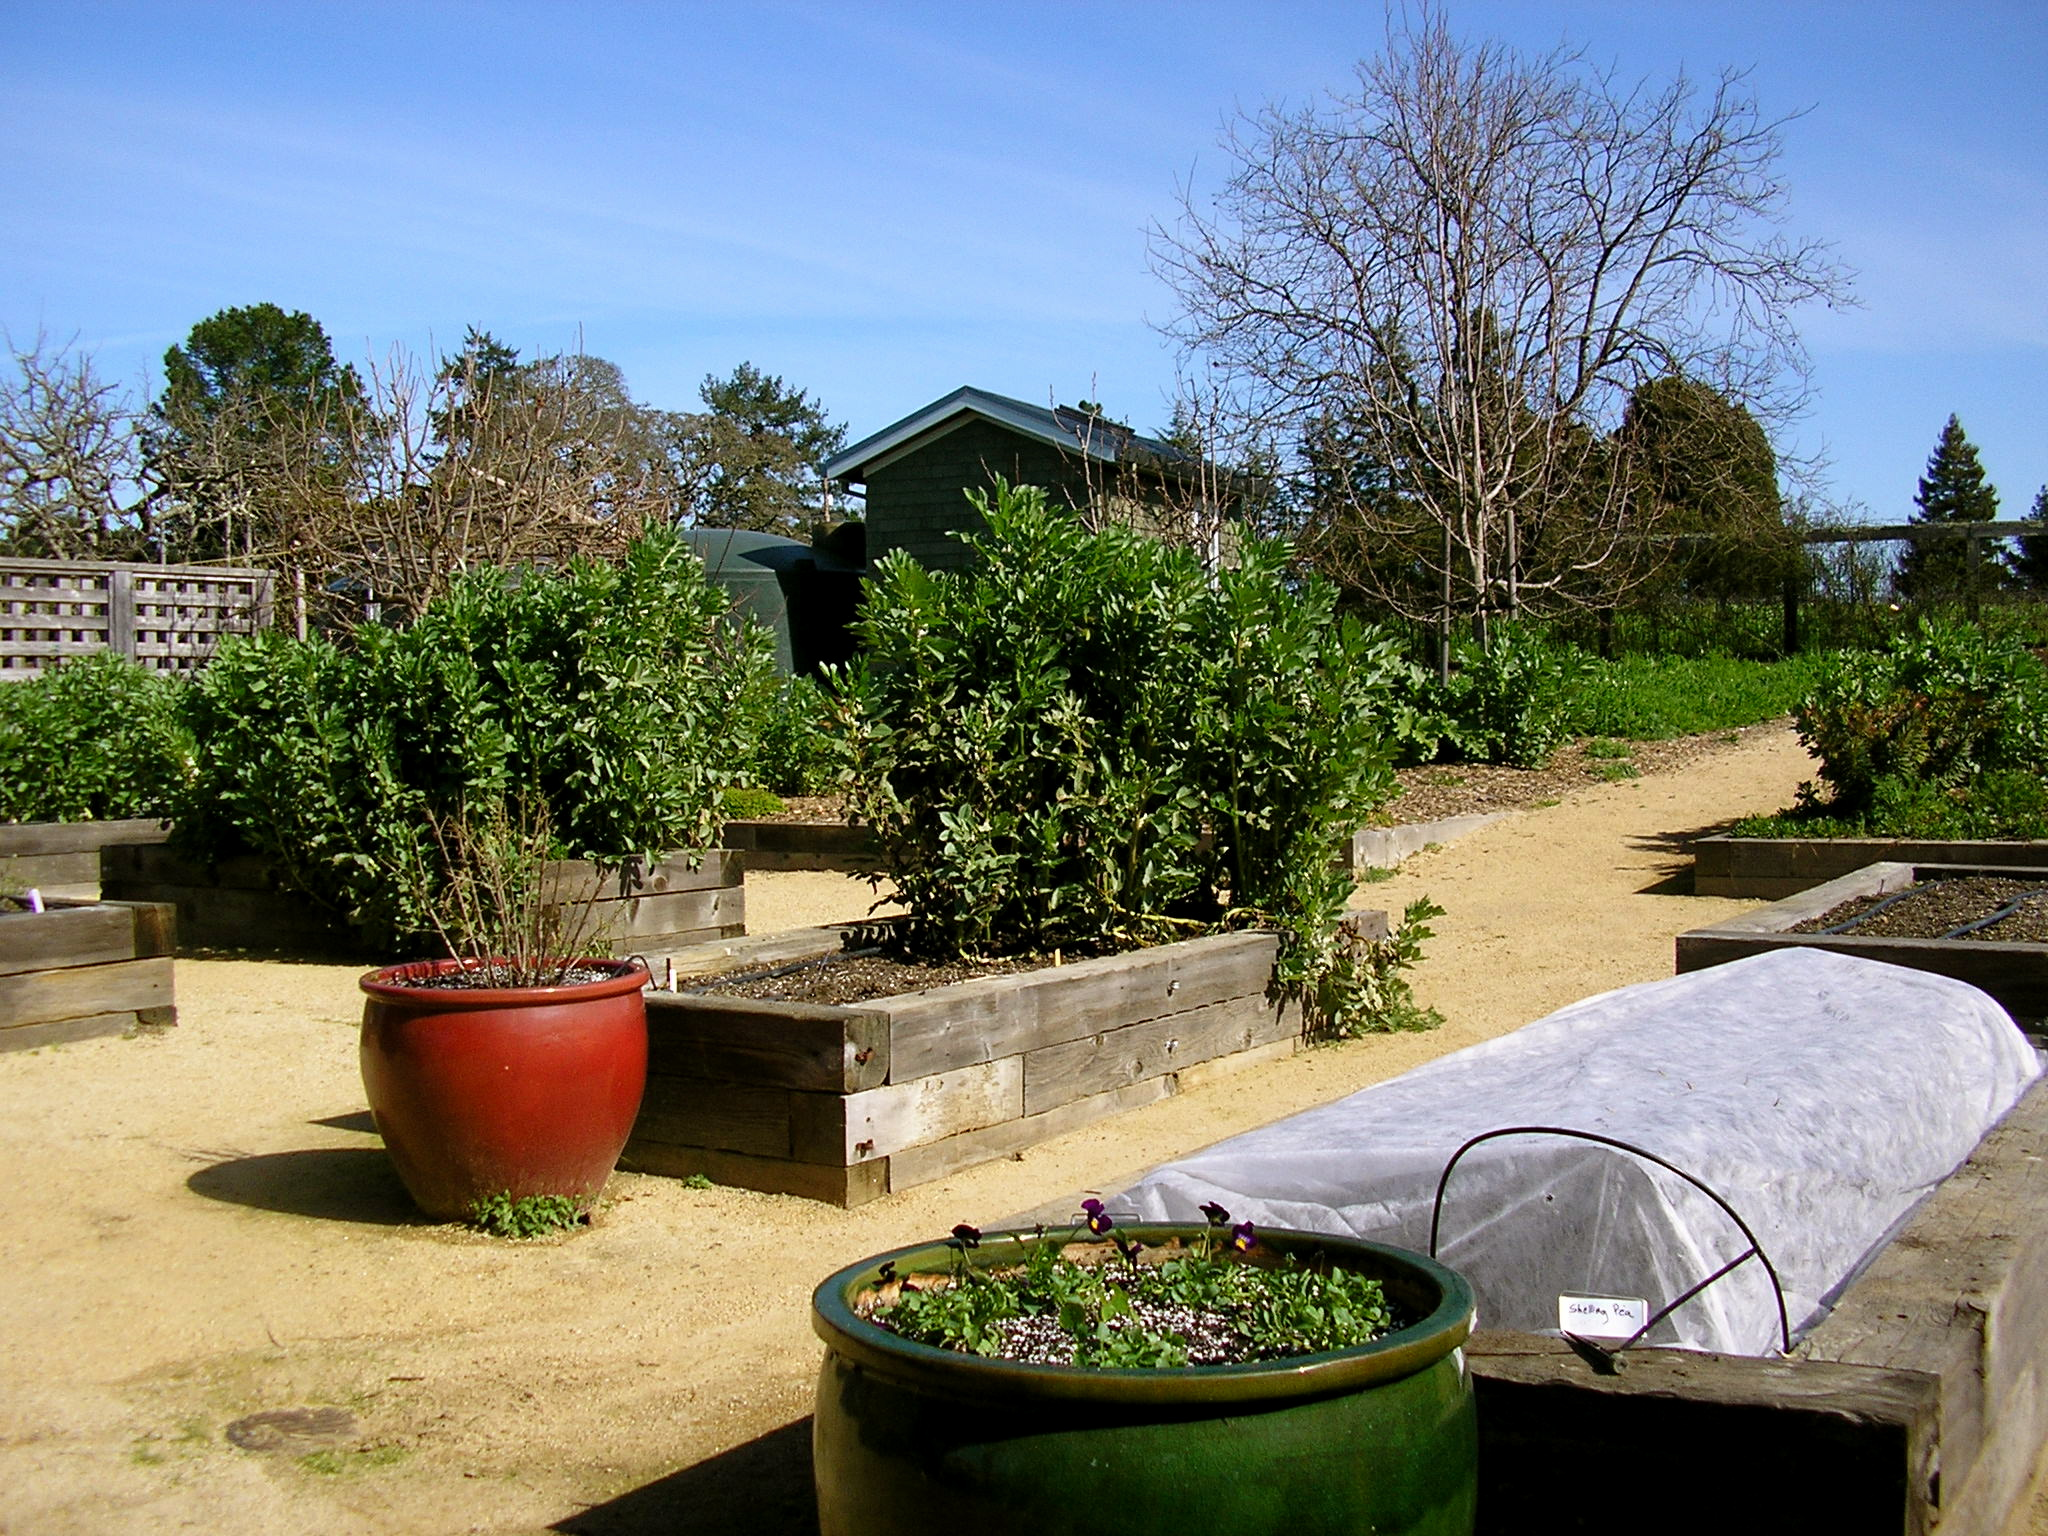 Here's the Rancho Pillow garden in Winter.